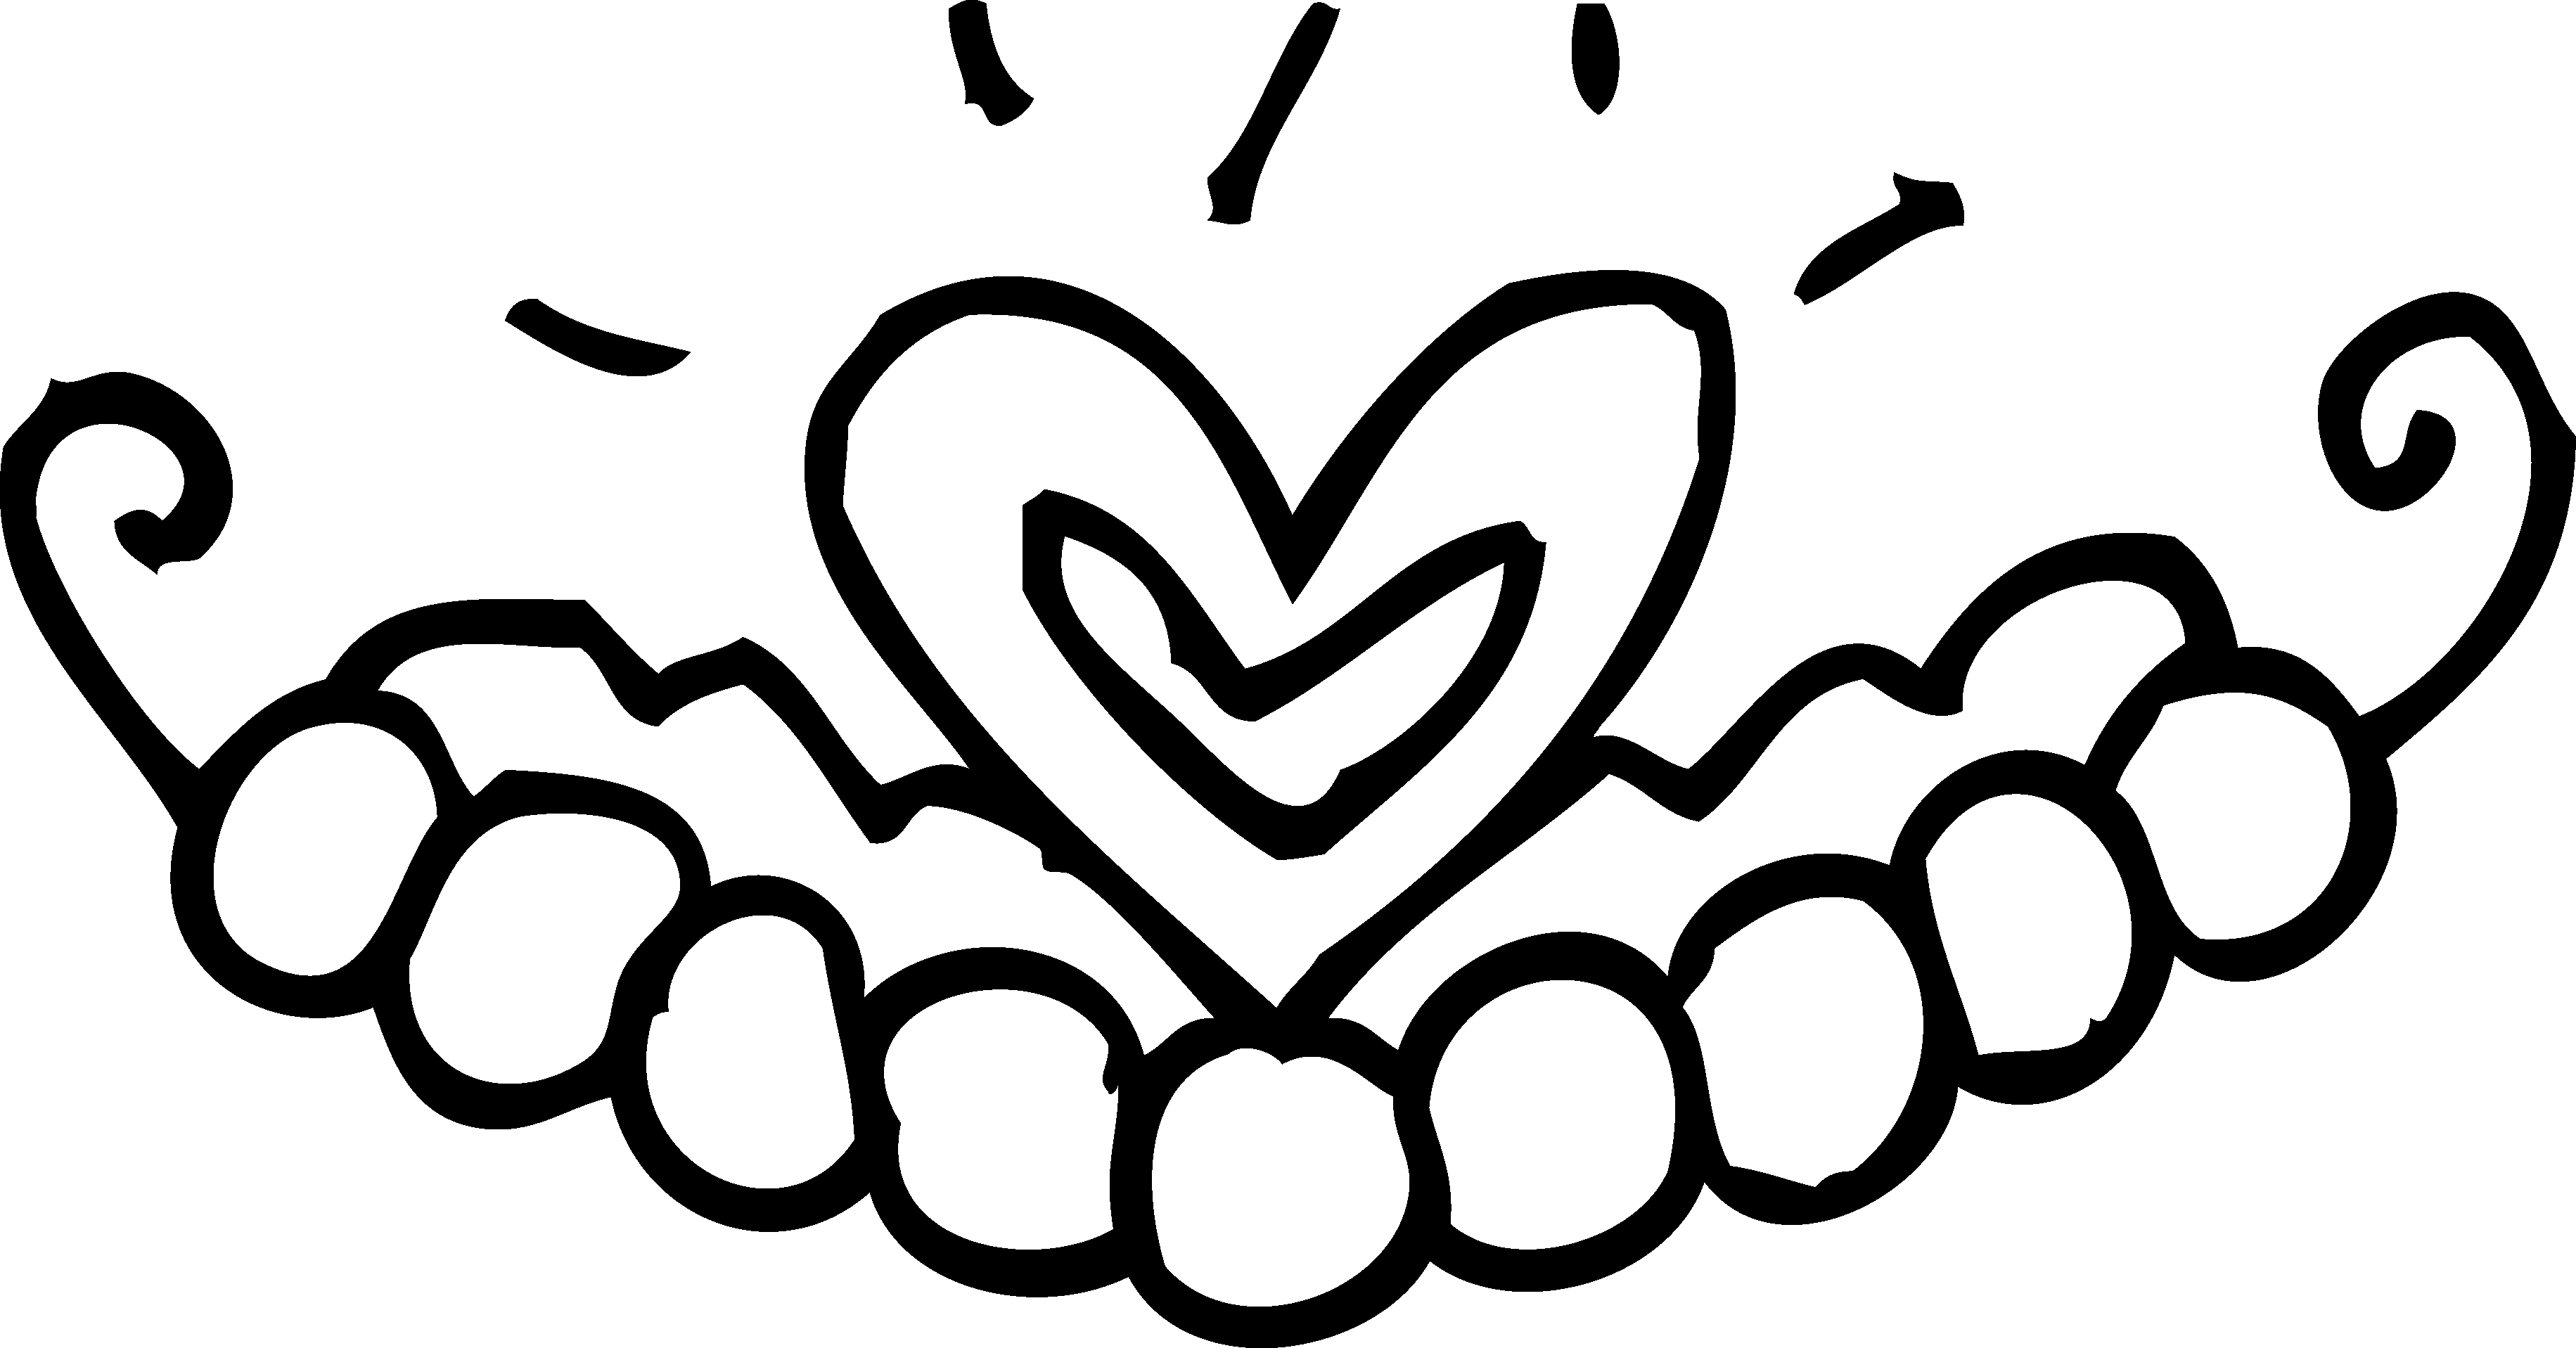 Hand drawn crown clipart svg black and white Crown Outline Drawing at GetDrawings.com | Free for personal use ... svg black and white